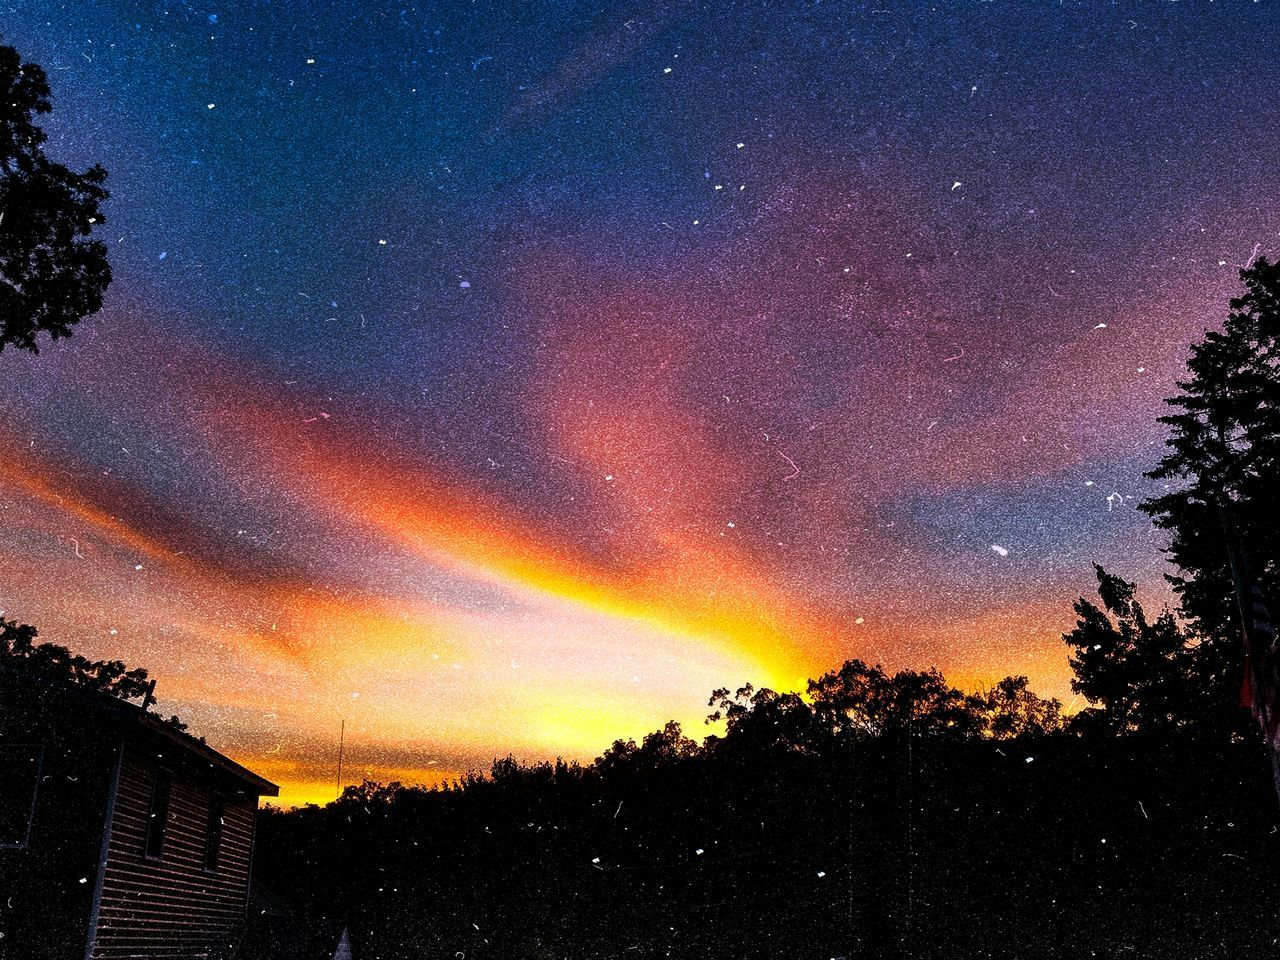 sky, beauty in nature, scenics - nature, tree, plant, no people, star - space, silhouette, tranquility, night, nature, architecture, space, tranquil scene, idyllic, astronomy, star, cloud - sky, building exterior, built structure, outdoors